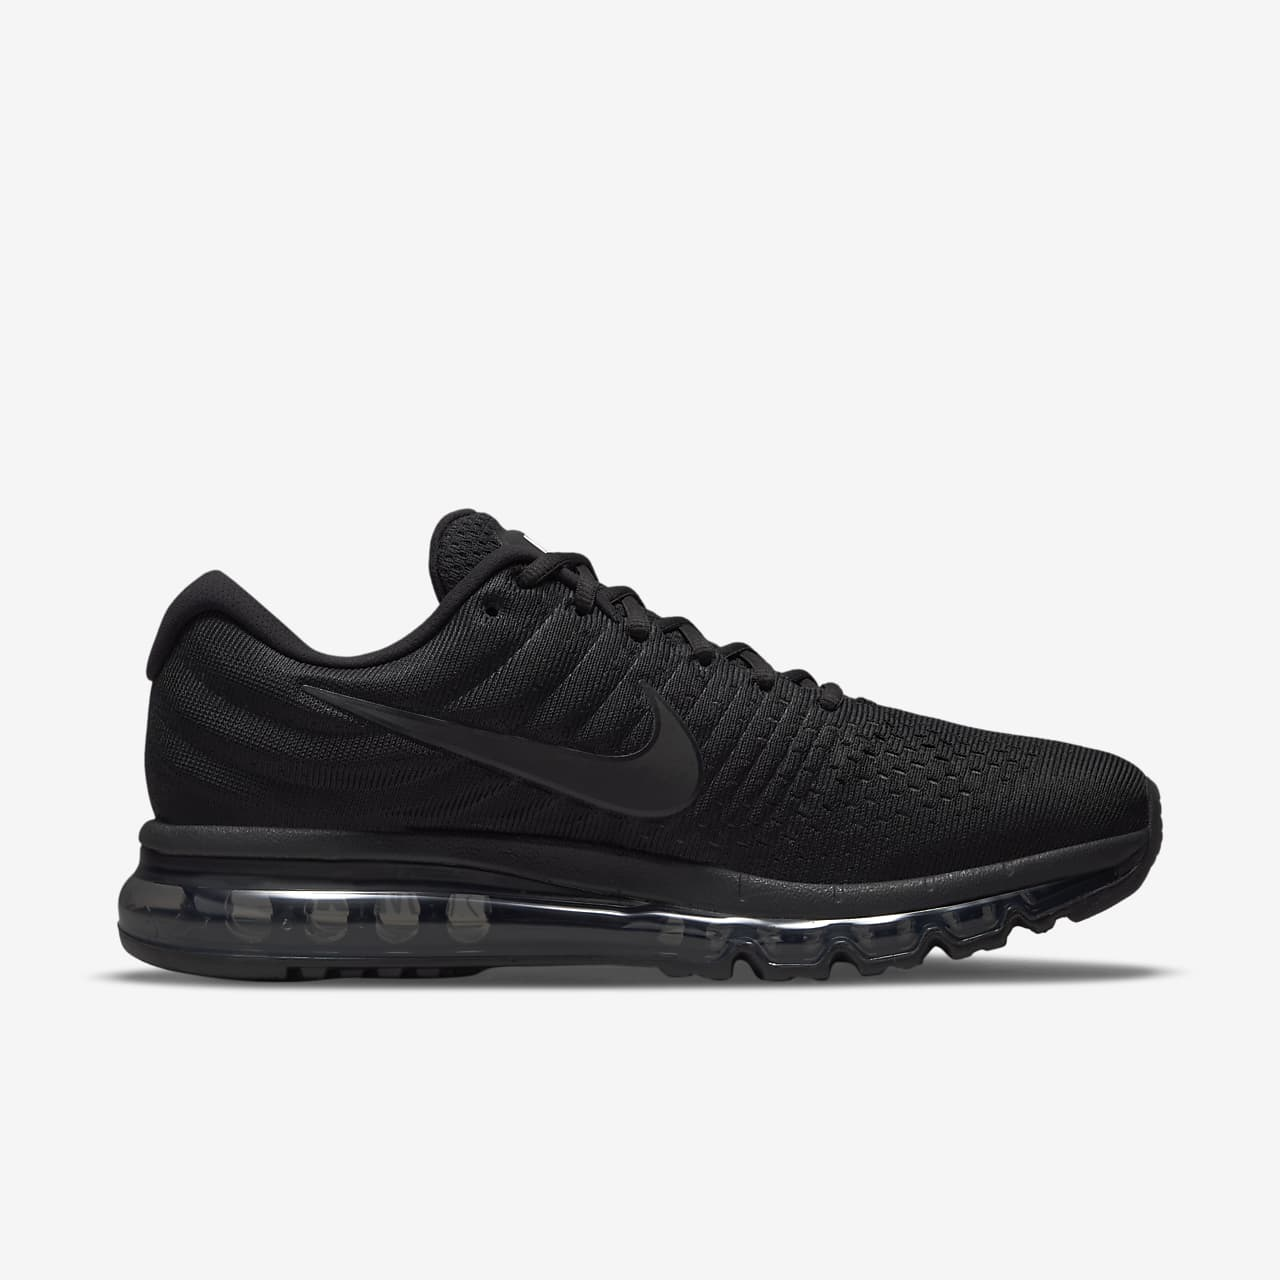 20eff7a413a95e Nike Air Max 2017 Men s Shoe. Nike.com CA